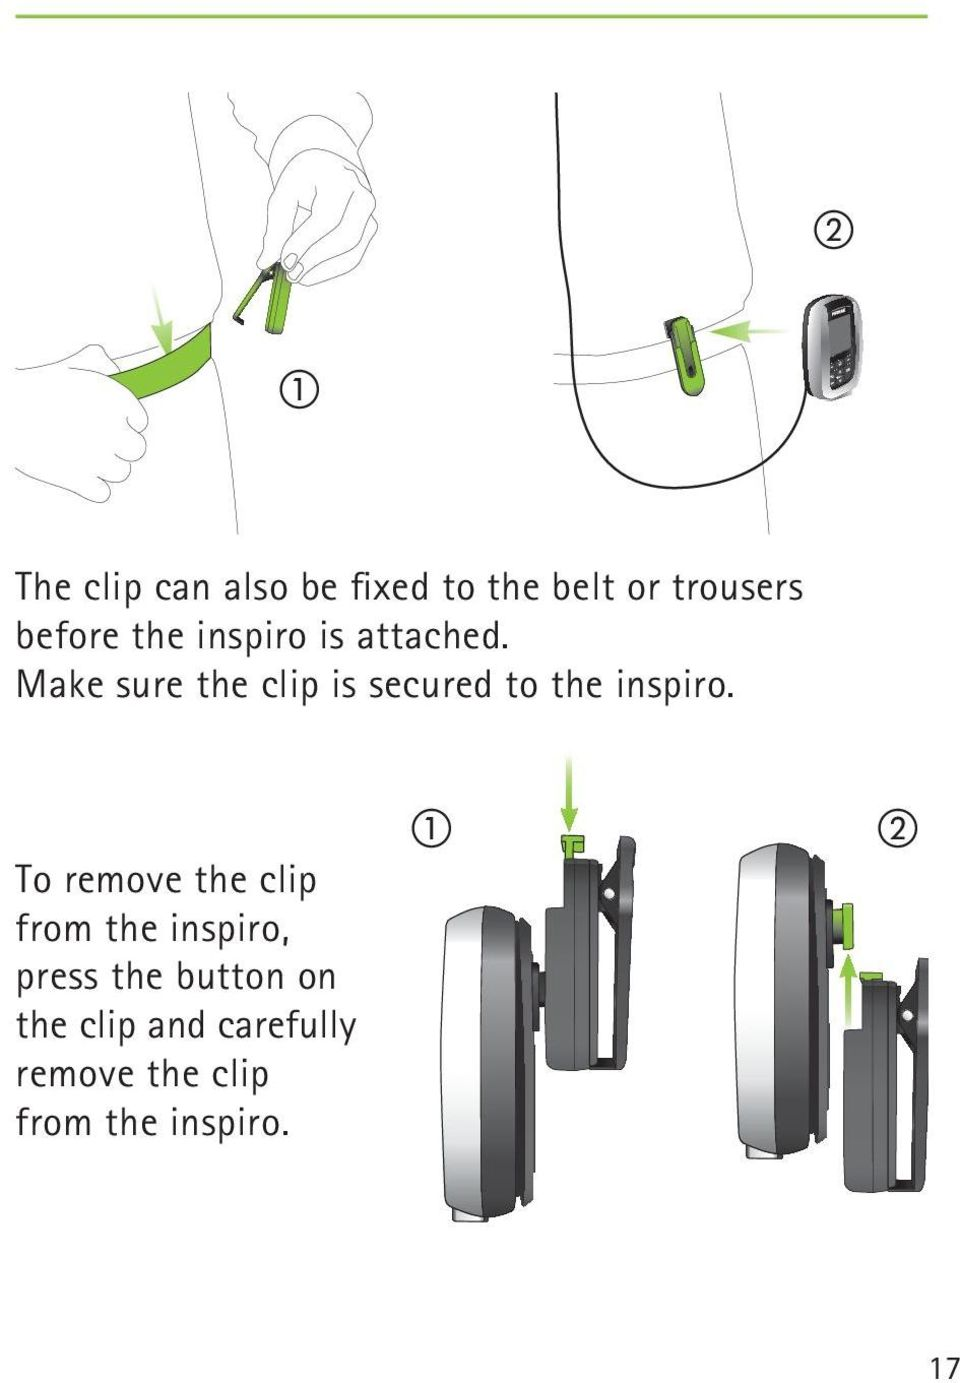 Make sure the clip is secured to the inspiro.